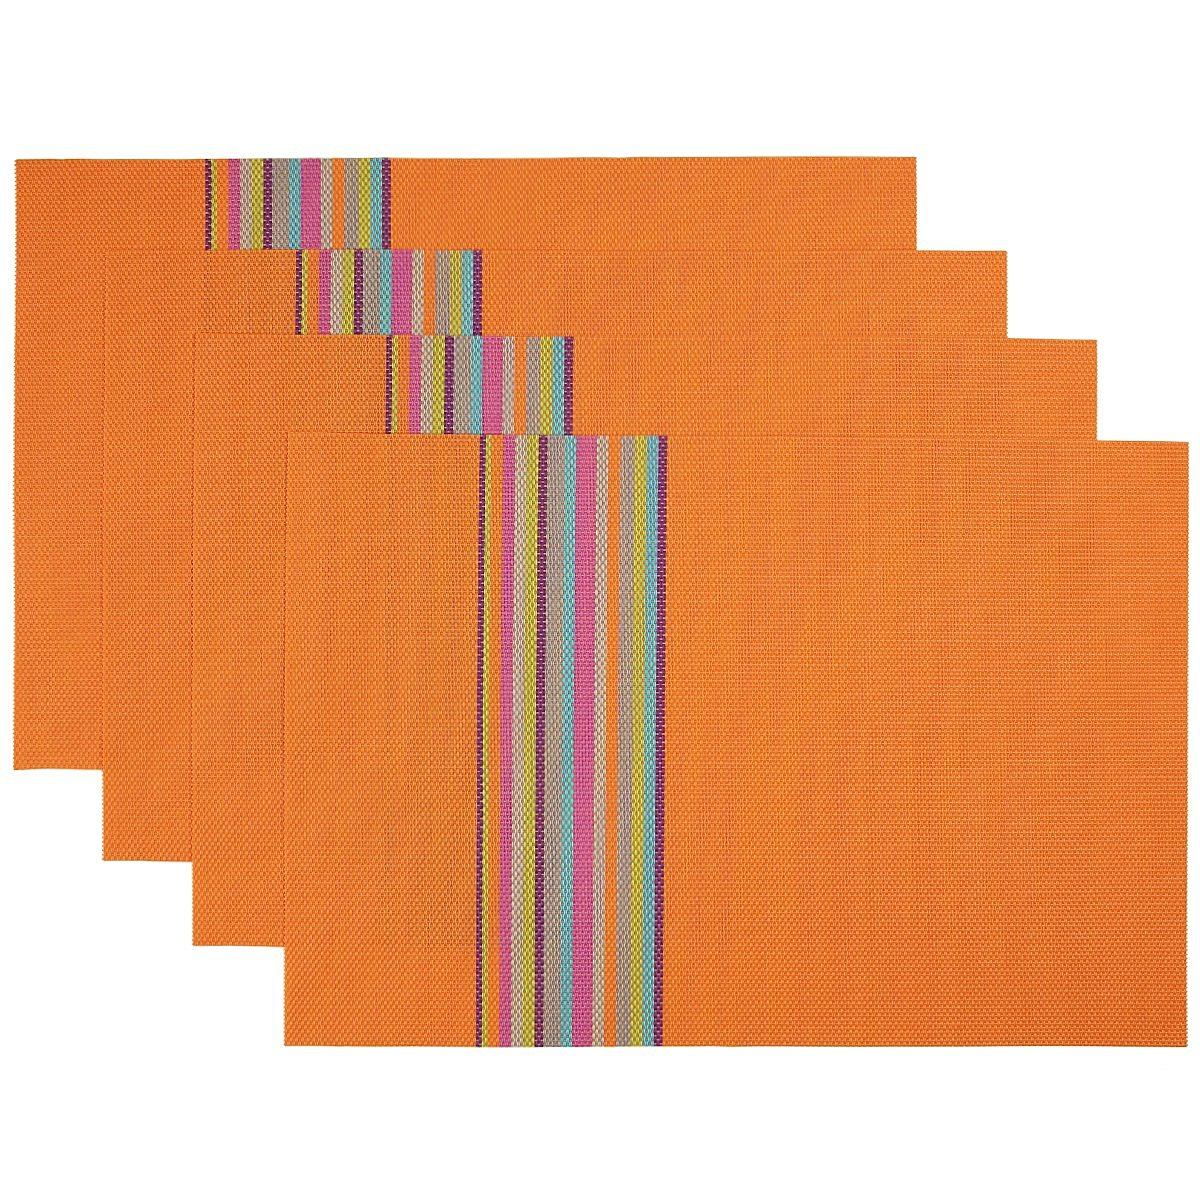 SiCoHome Placemats,Orange,Set of 4,Striped Placemats for Dining Table Heat Insulation Stain-resistant Woven Vinyl Kitchen Placemat Vinyl Placemats